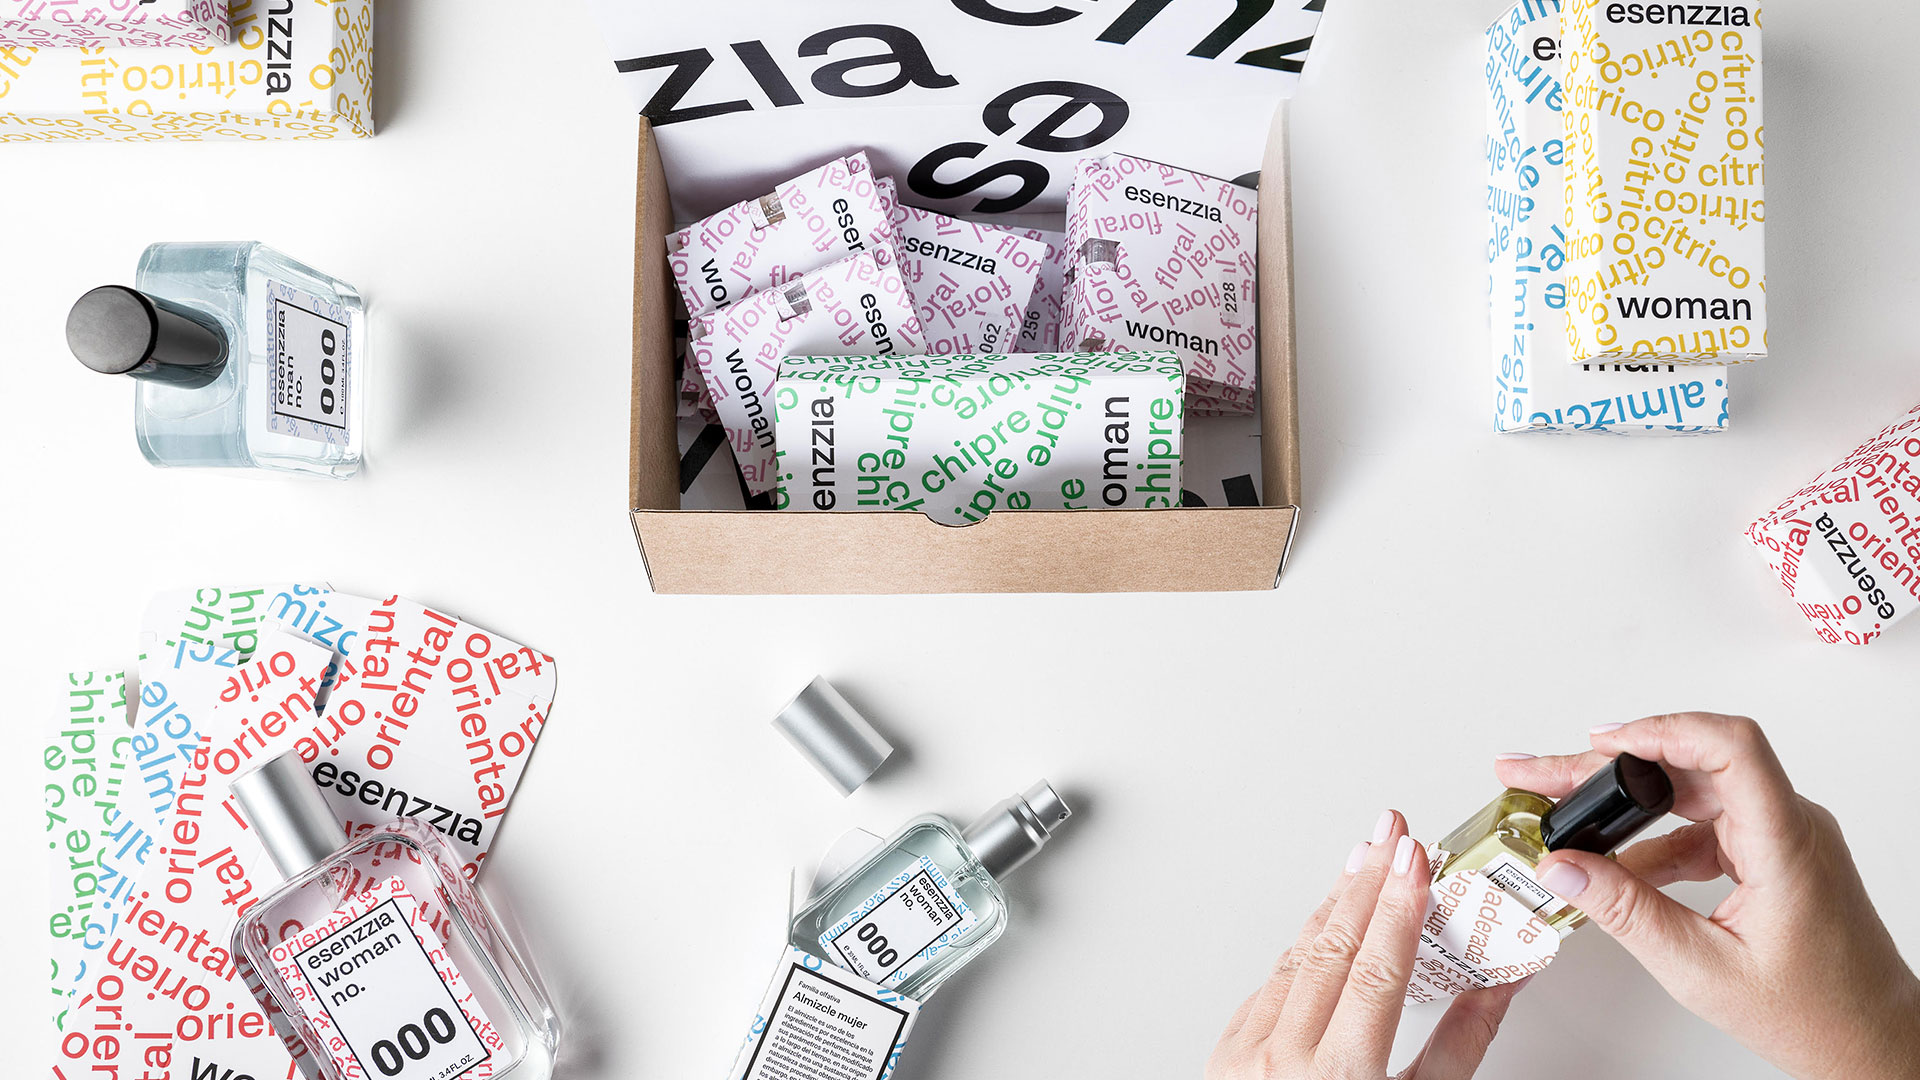 Corporate image, packaging and UX / UI design for ecommerce, Esenzzia, 2019